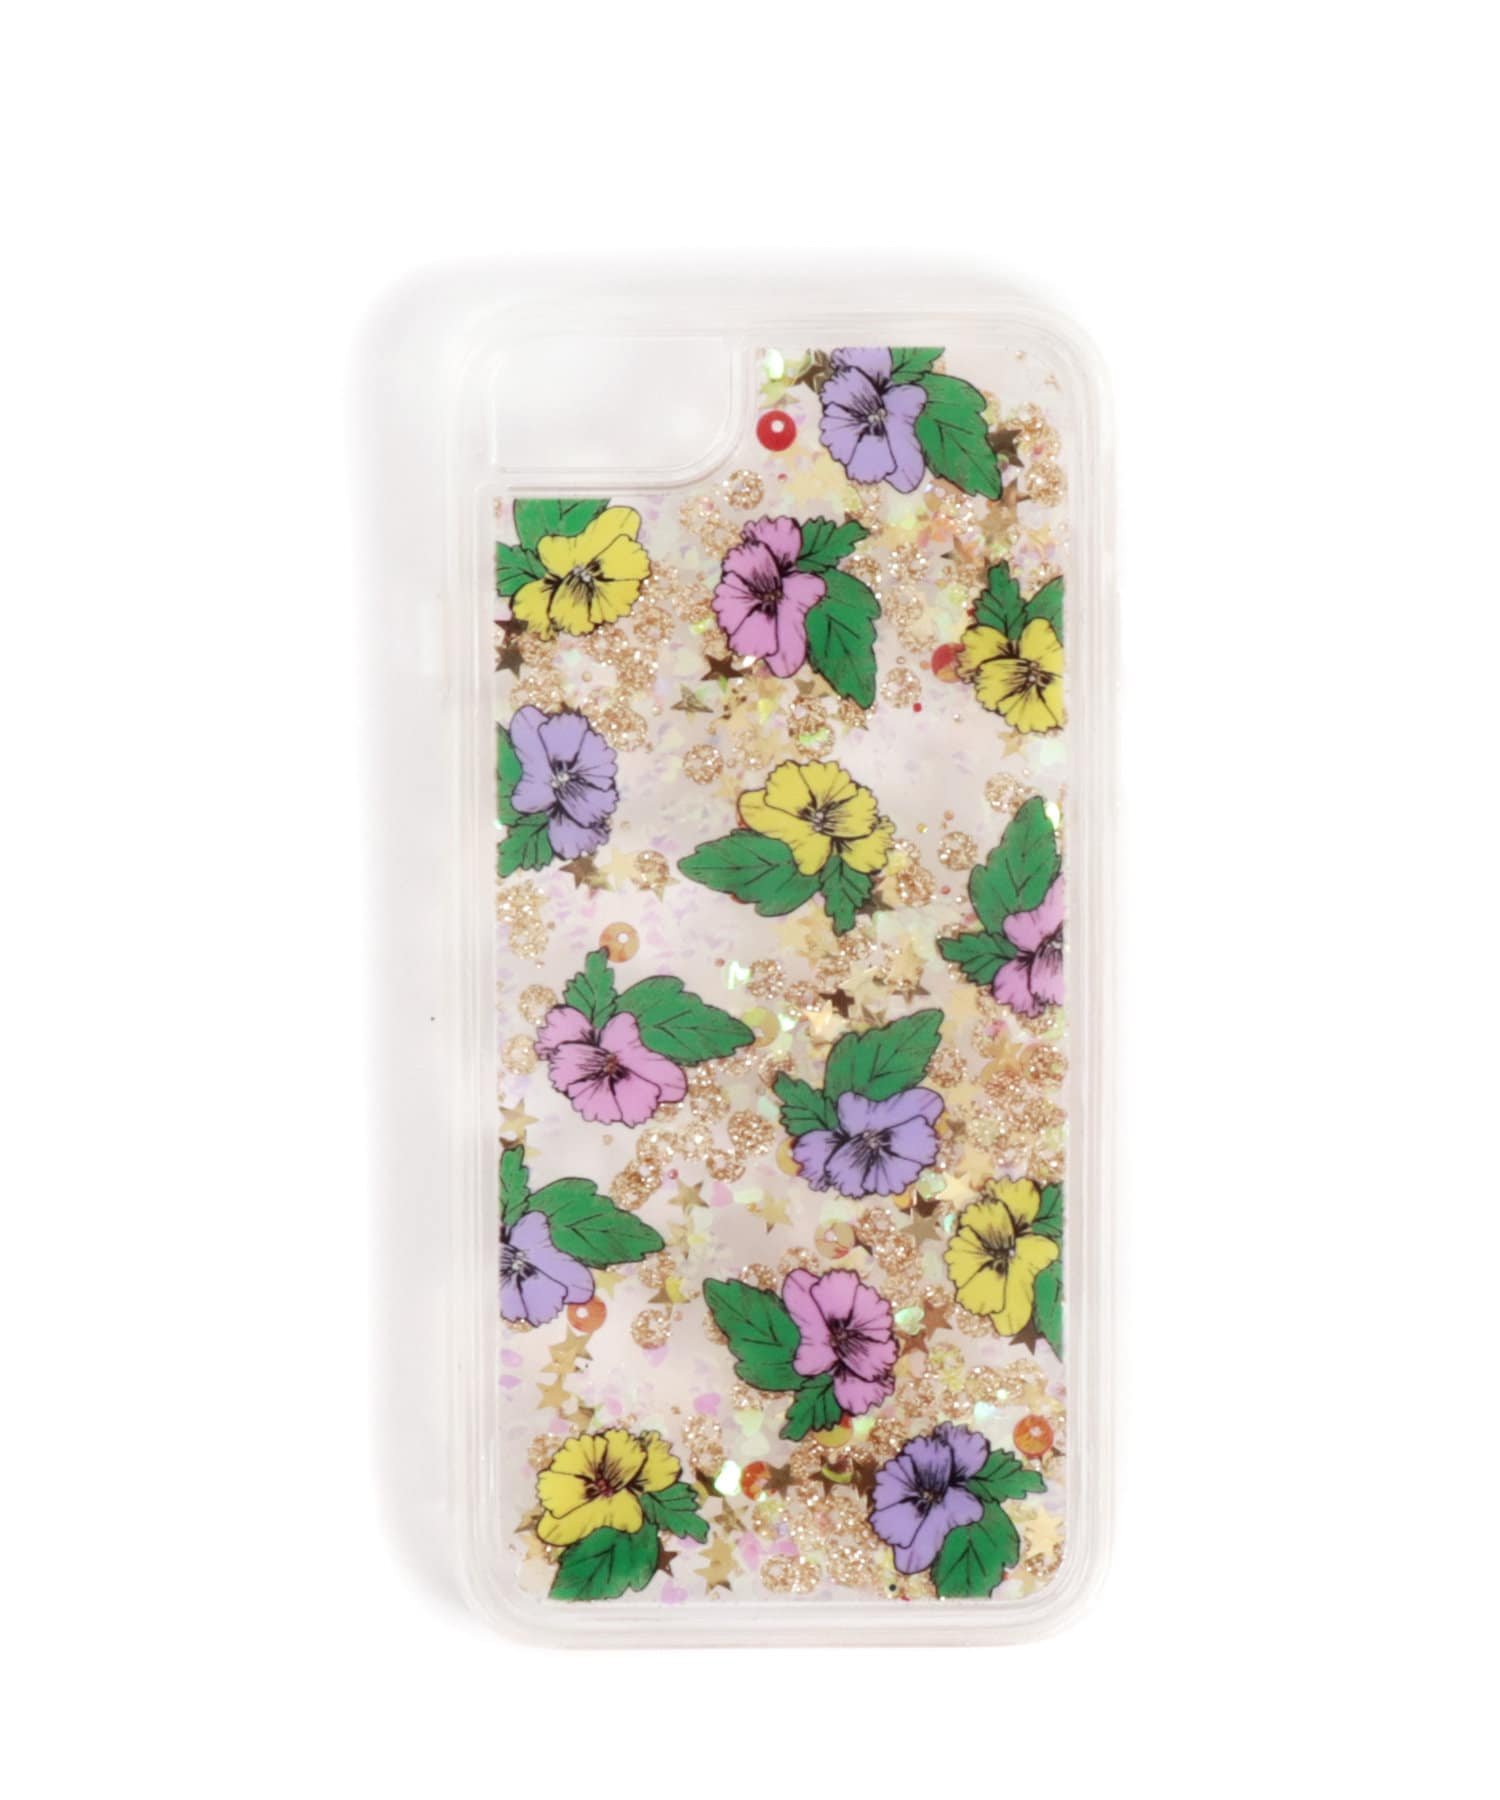 ASOKO(アソコ) ASOKO(アソコ) FLOWERラメiPhone7・8ケース その他